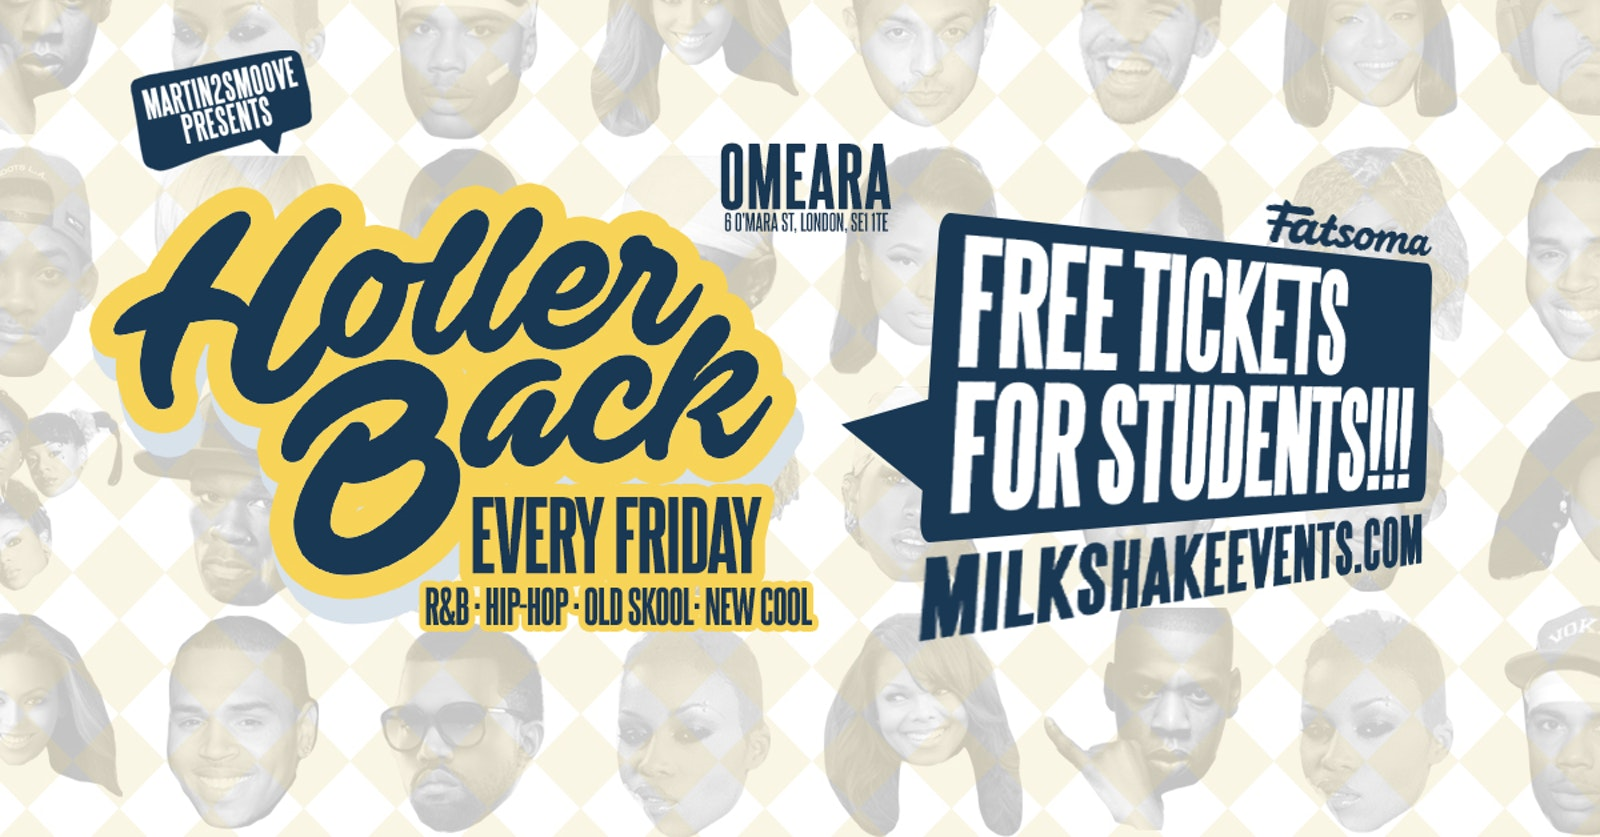 Holler Back – HipHop n R&B at Omeara London   Free Student Tickets!